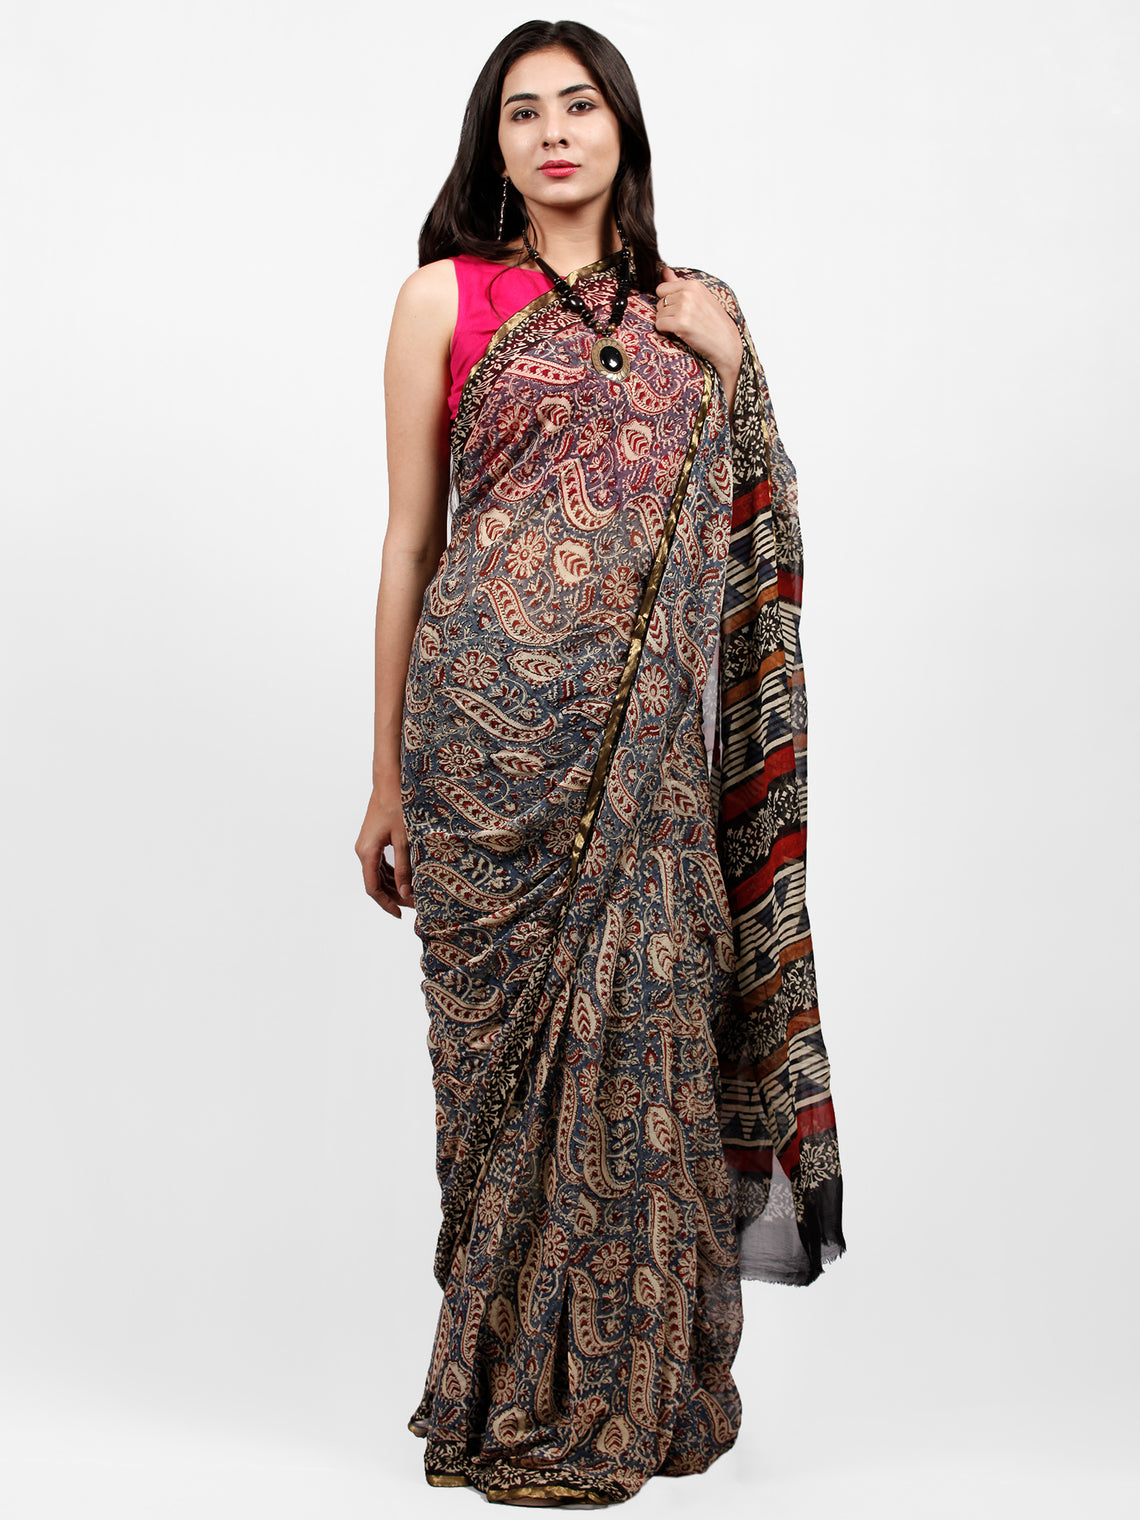 Ivory Indigo Red Black Hand Block Printed Chiffon Saree with Zari Border - S031703235